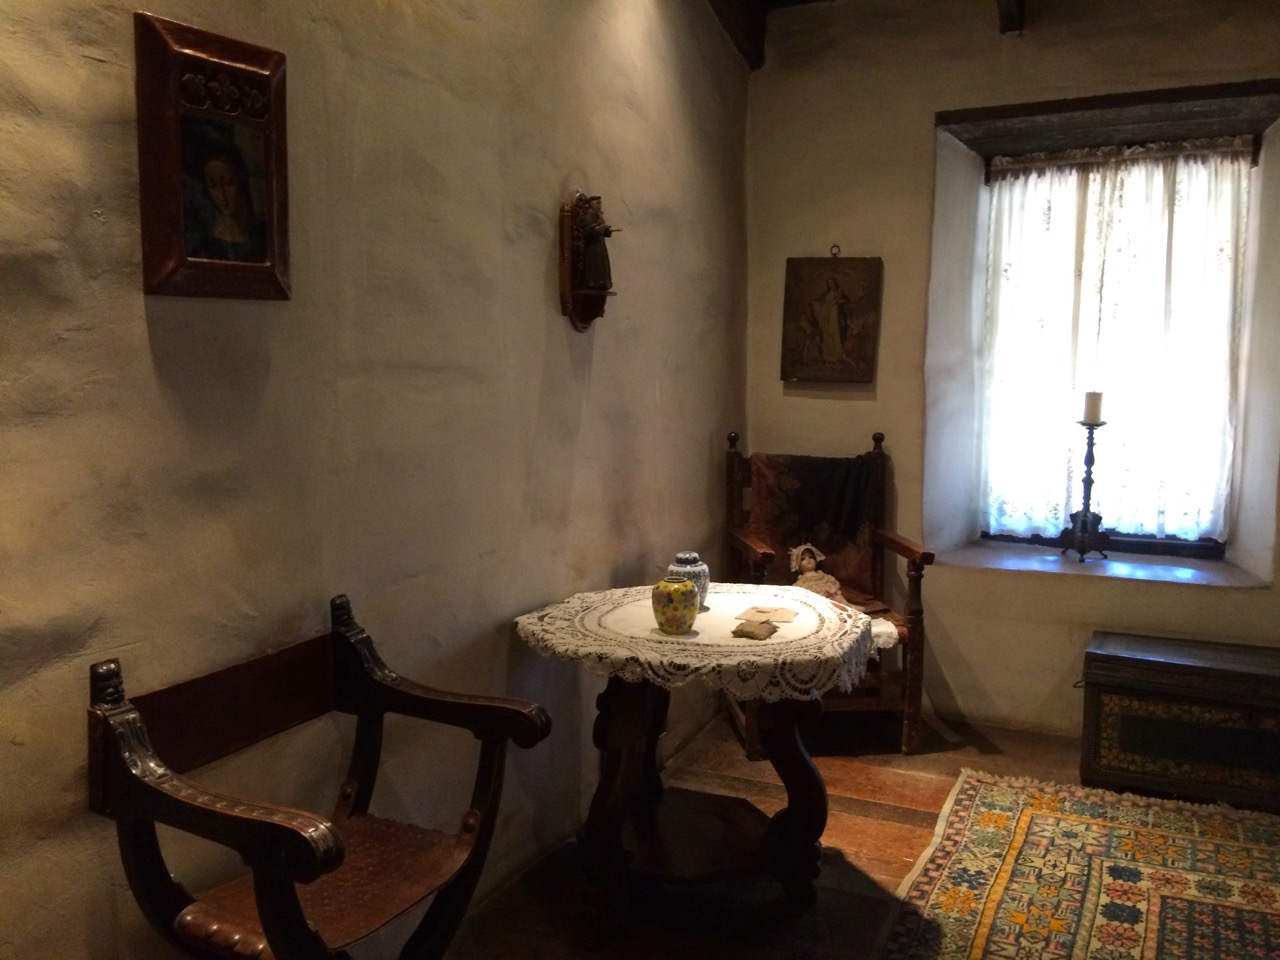 Avila Adobe on Olvera Street is the oldest house in Los Angeles and one of the ways to learn about Latino Culture in Los Angeles